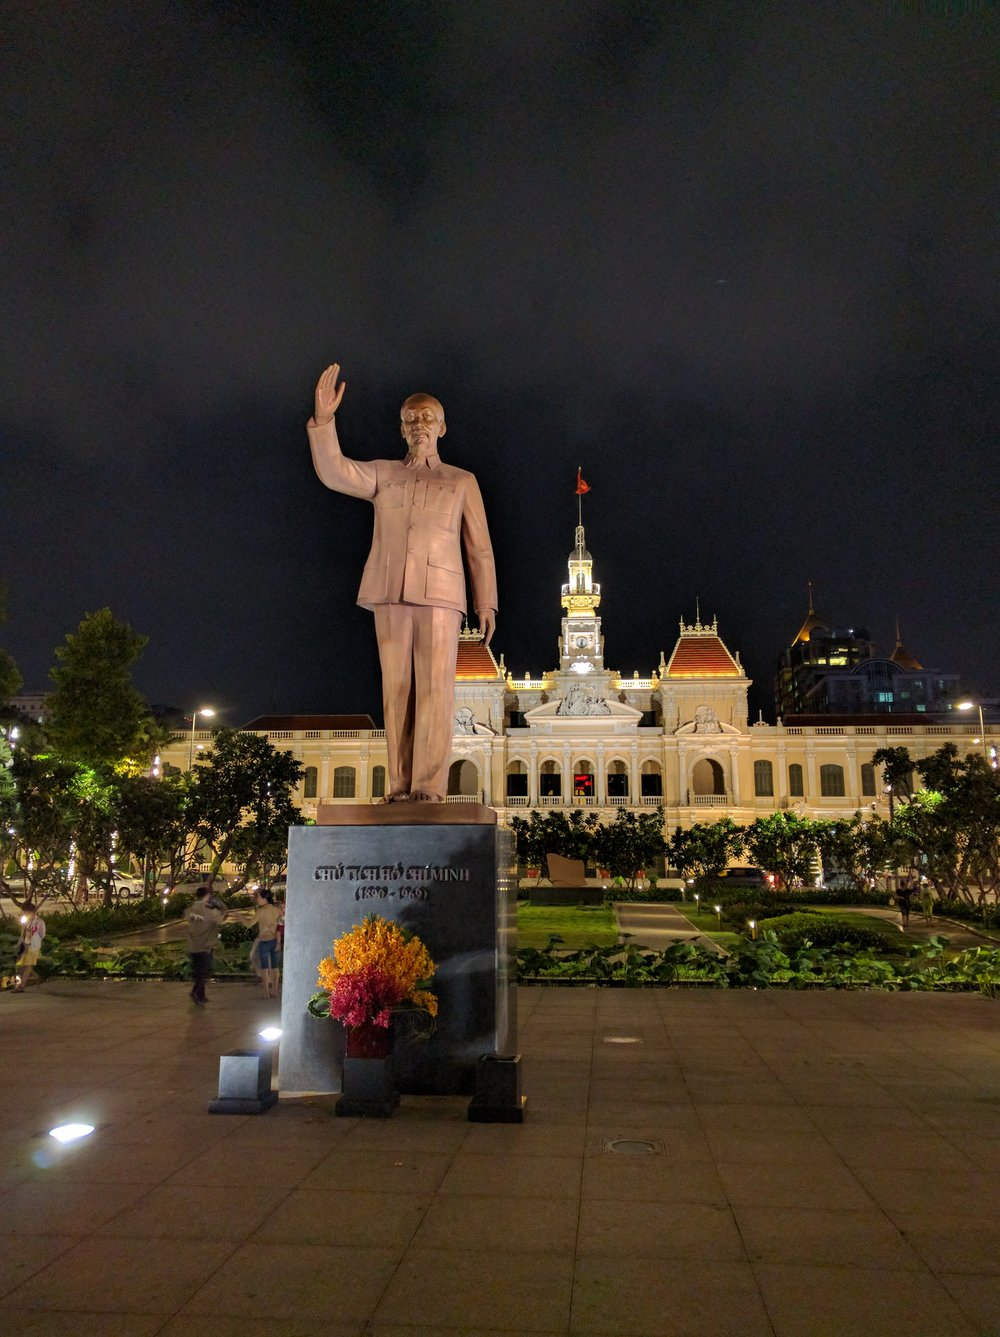 Statute of Ho Chi Minh in Saigon